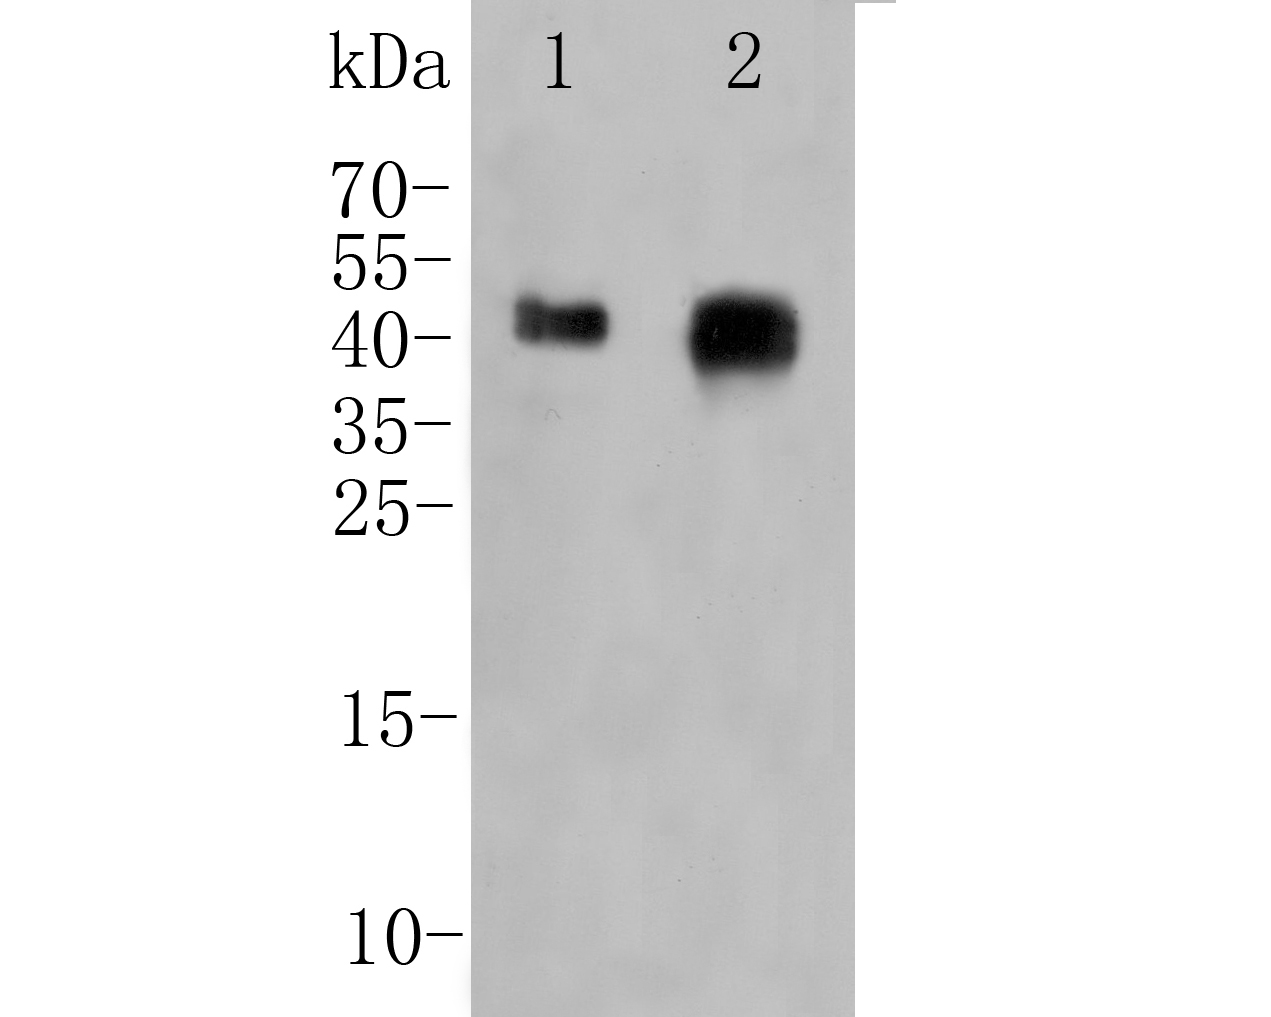 Western blot analysis of FOLR1 on different lysates. Proteins were transferred to a PVDF membrane and blocked with 5% BSA in PBS for 1 hour at room temperature. The primary antibody (ER1901-95, 1/500) was used in 5% BSA at room temperature for 2 hours. Goat Anti-Rabbit IgG - HRP Secondary Antibody (HA1001) at 1:5,000 dilution was used for 1 hour at room temperature.<br /> Positive control: <br /> Lane 1: SKBR3 cell lysate<br /> Lane 2: human placenta tissue lysate